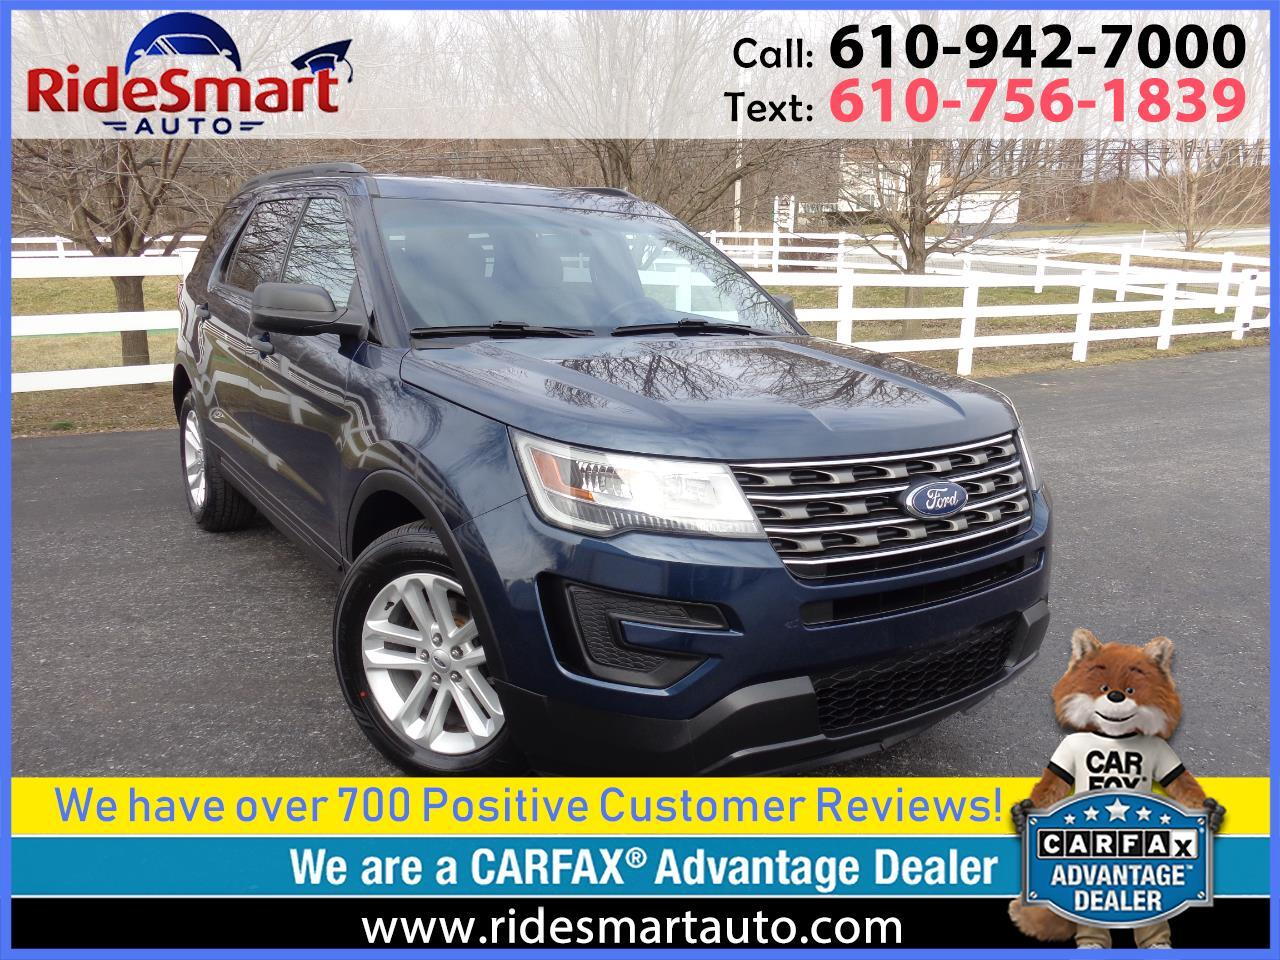 2016 Ford Explorer 6 Cylinder-3rd Row Seat-Rear Camera-Bluetooth